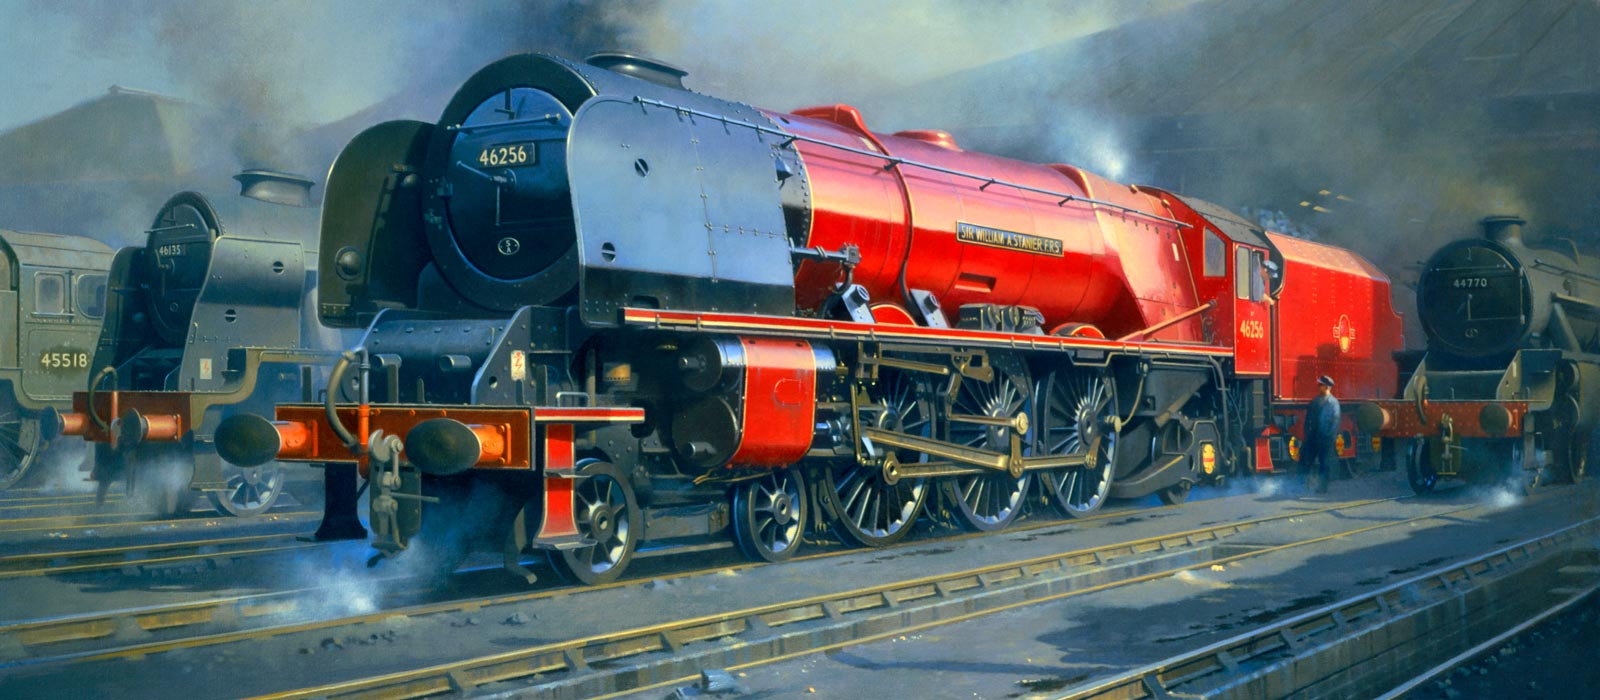 Painting of an LMS Duchess locomotive